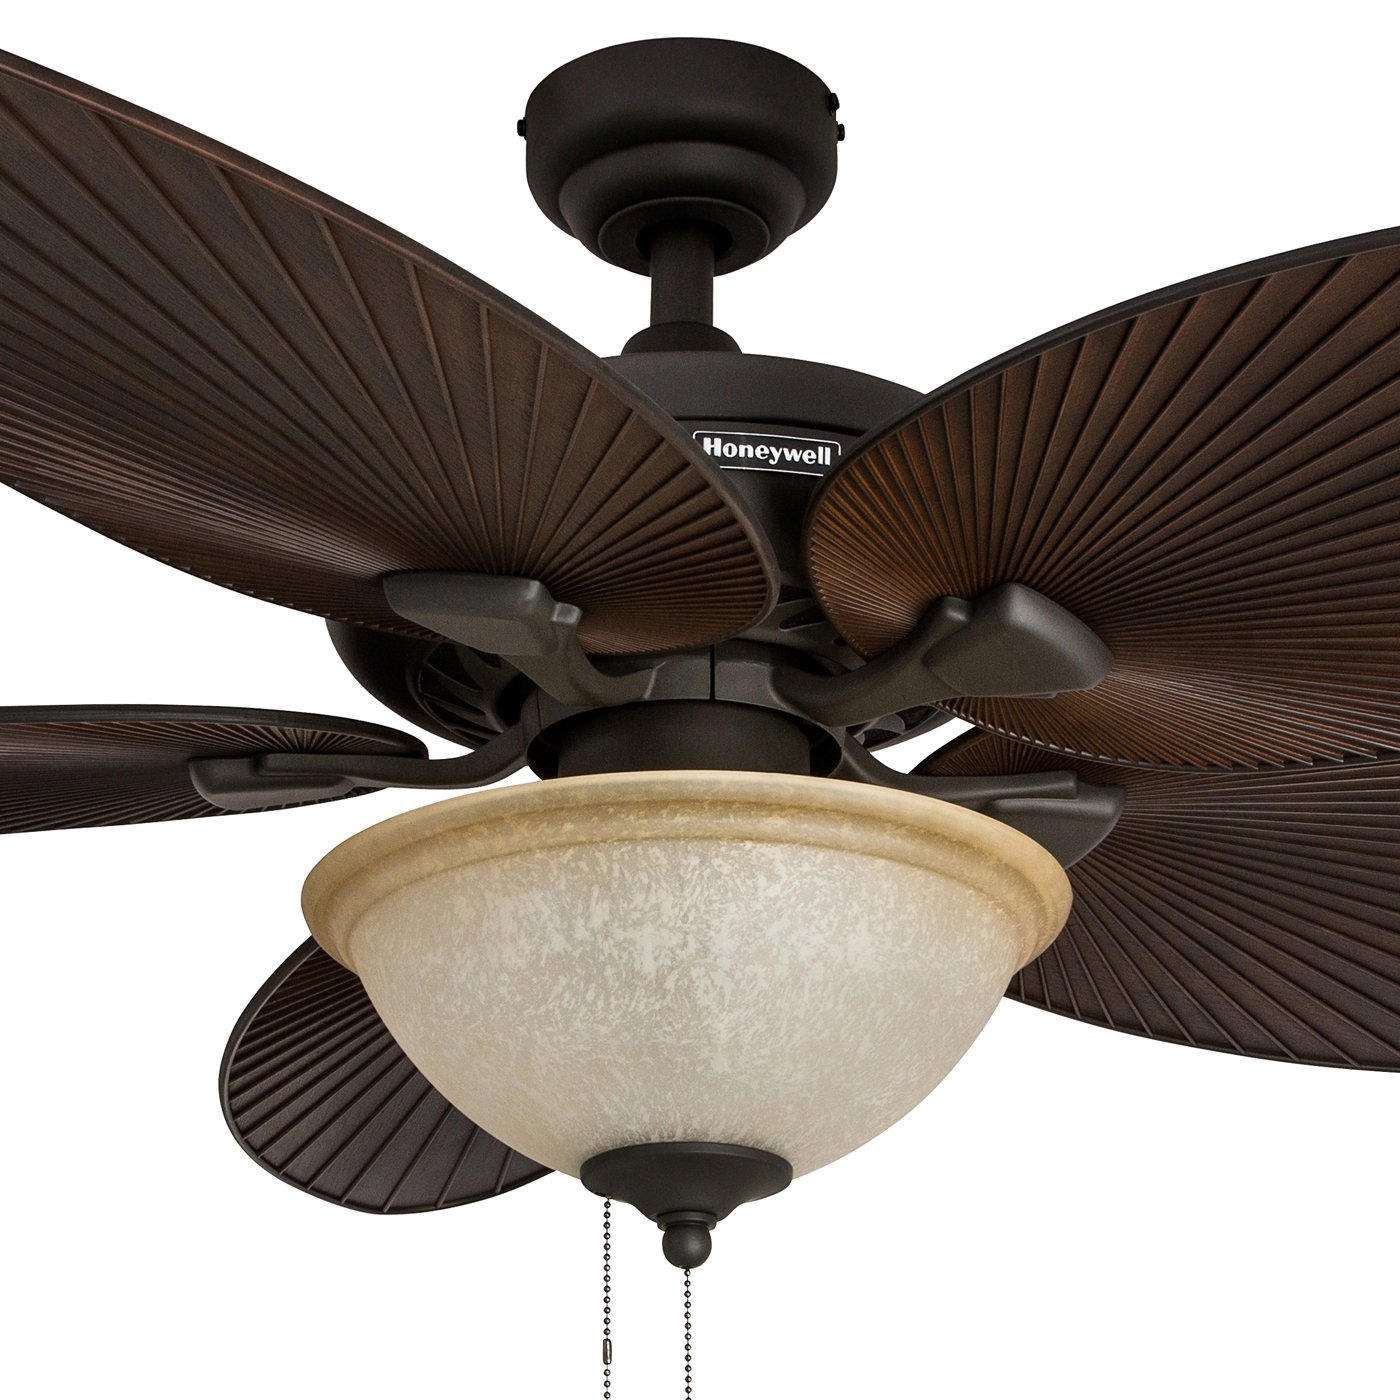 Honeywell Palm Island 52 Inch Tropical Ceiling Fan with Sunset